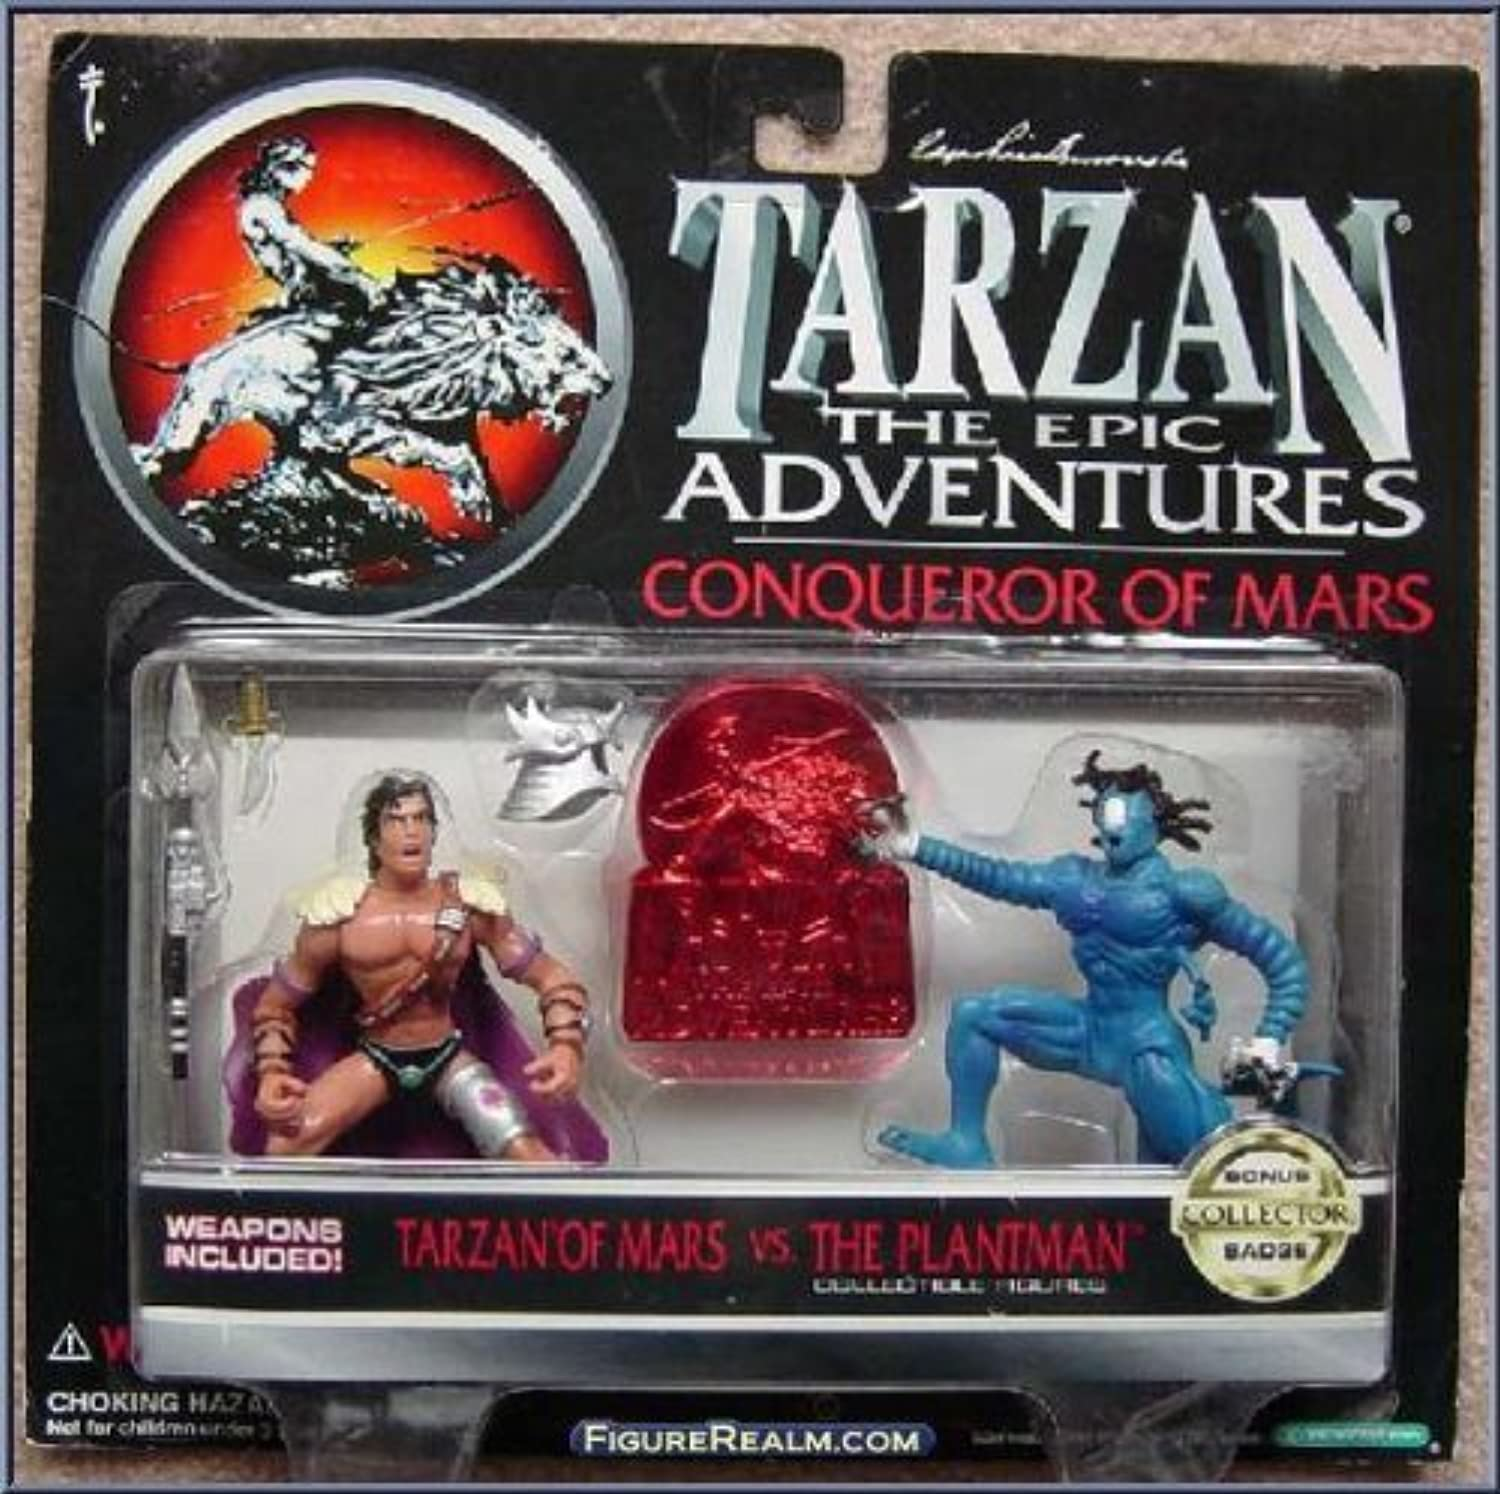 TARZAN, THE EPIC ADVENTURES, EDGAR RICE BURROUGH'S TARZAN, CONQUEROR OF MARS, TARZAN OF MARS vs THE PLANTMAN COLLECTIBLE FIGURES, WITH WEAPONS AND BONUS COLLECTOR BADGE by Trendmasters